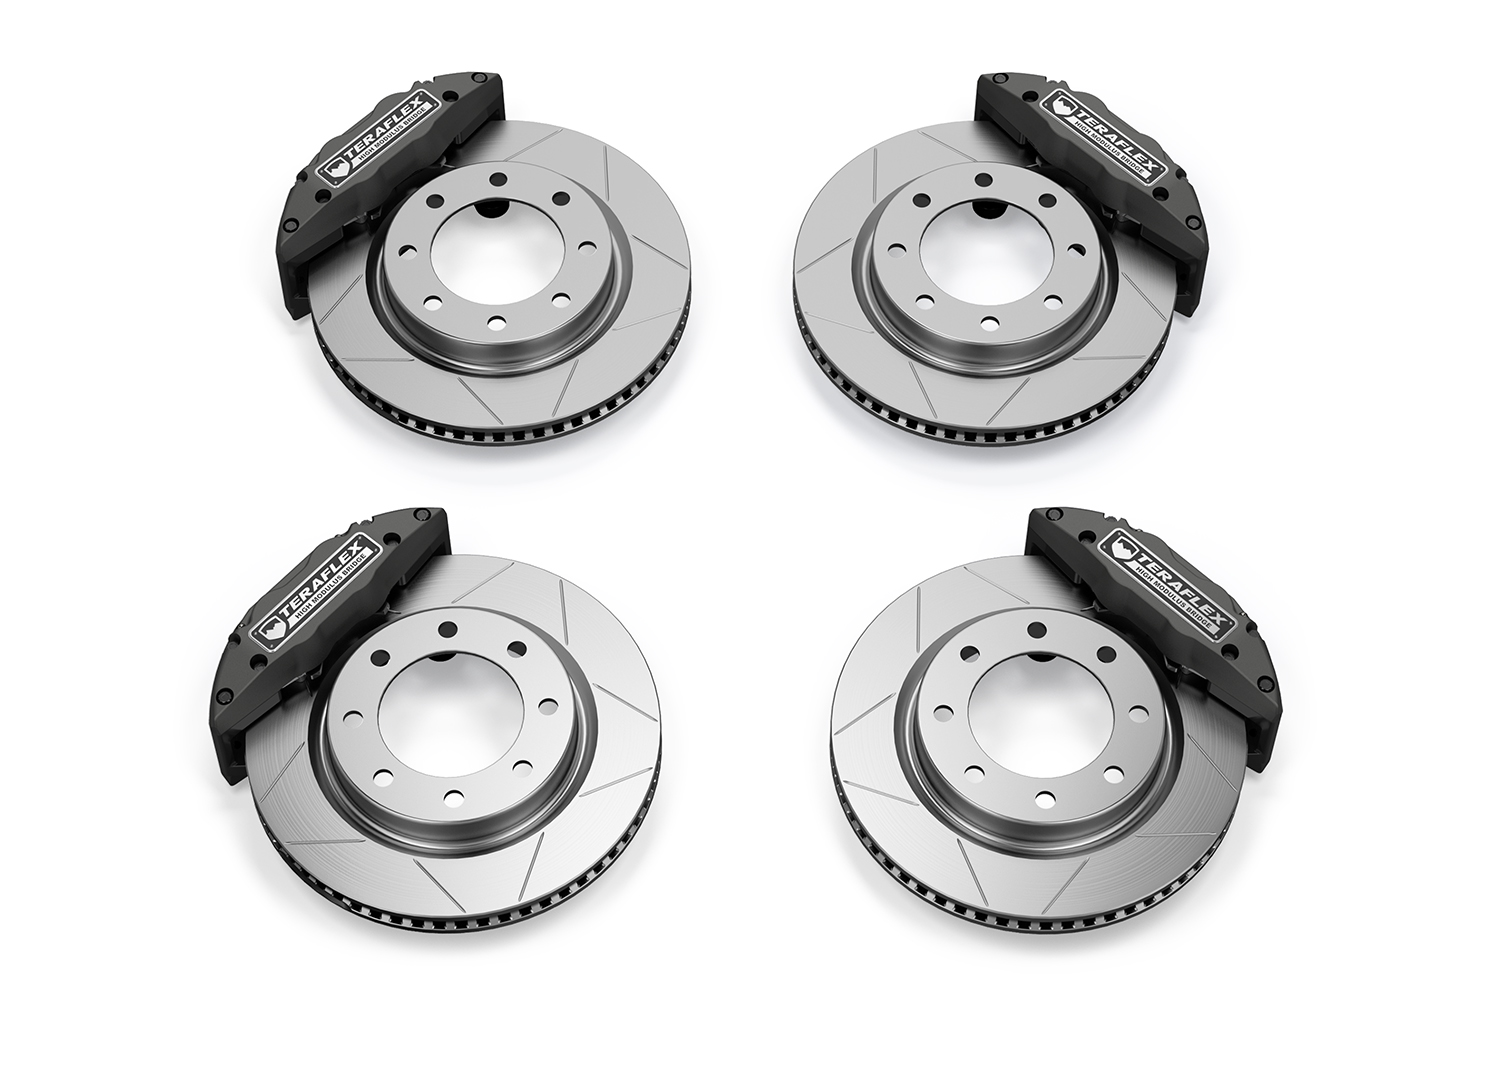 Teraflex Front/Rear Delta Brake Kit, 8x6.5in Pattern - JL/JK